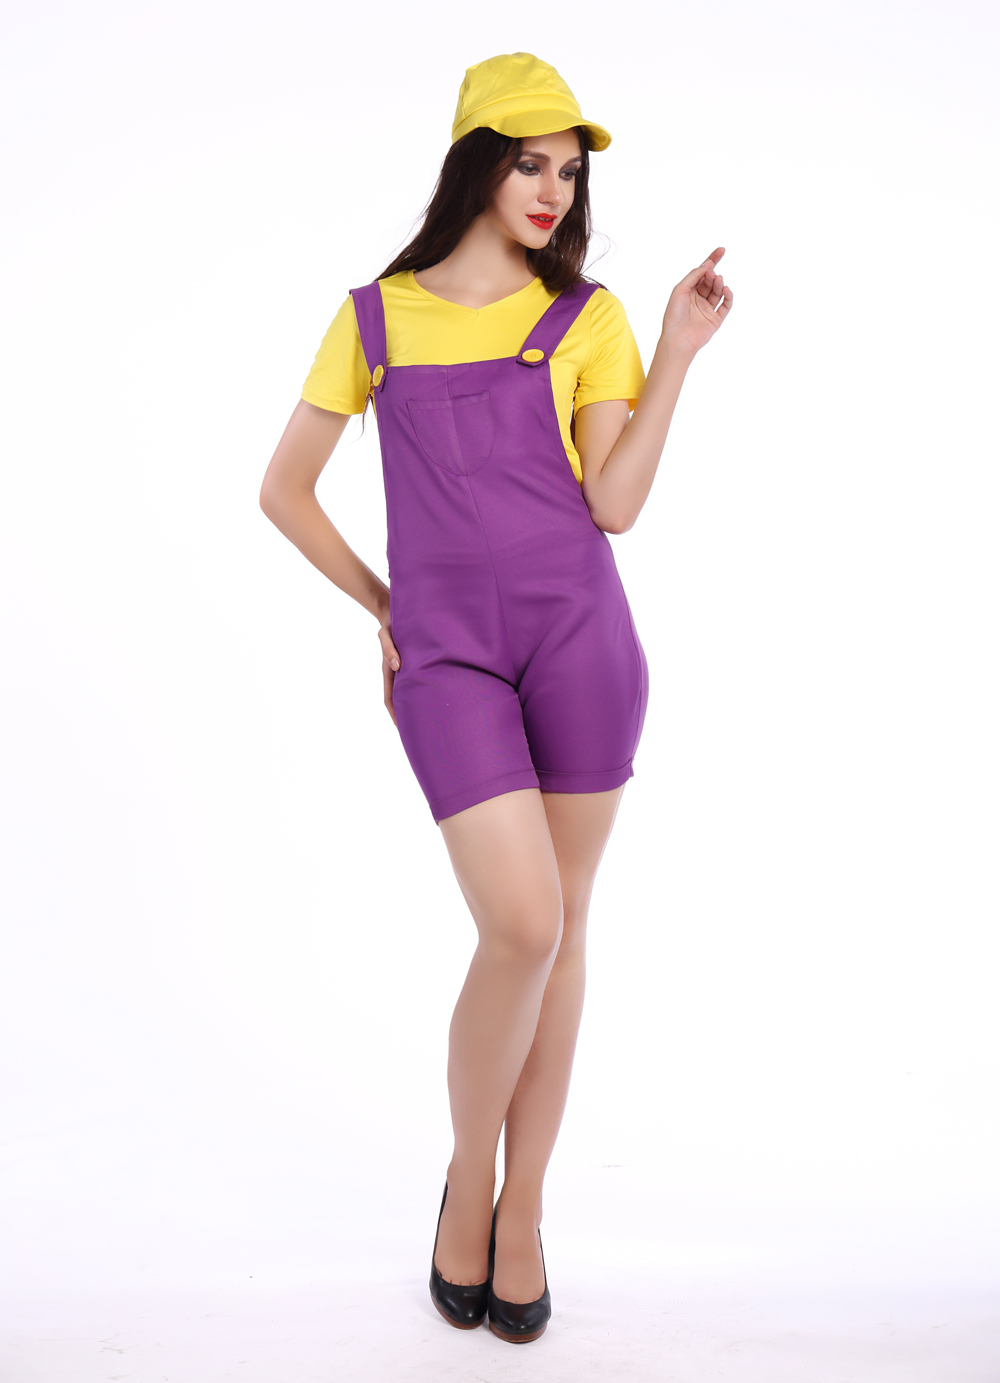 F1684-1 Halloweeen cosplay costume for women